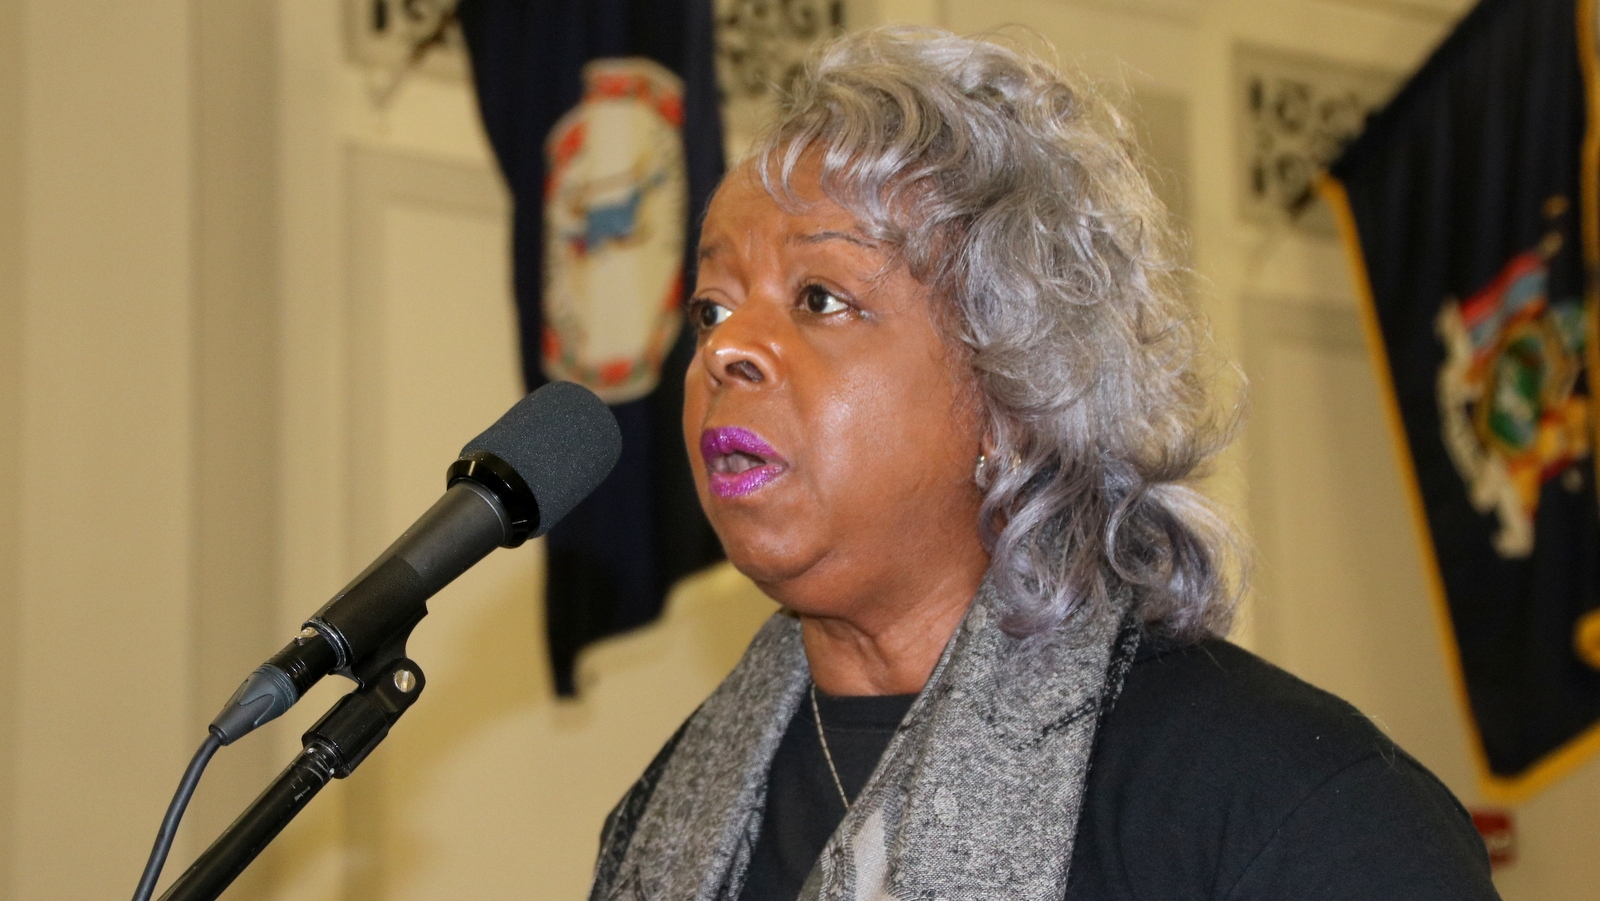 Charlene Bradley said the Brighton community on Northwest Baltimore is being neglected. (Fern Shen)